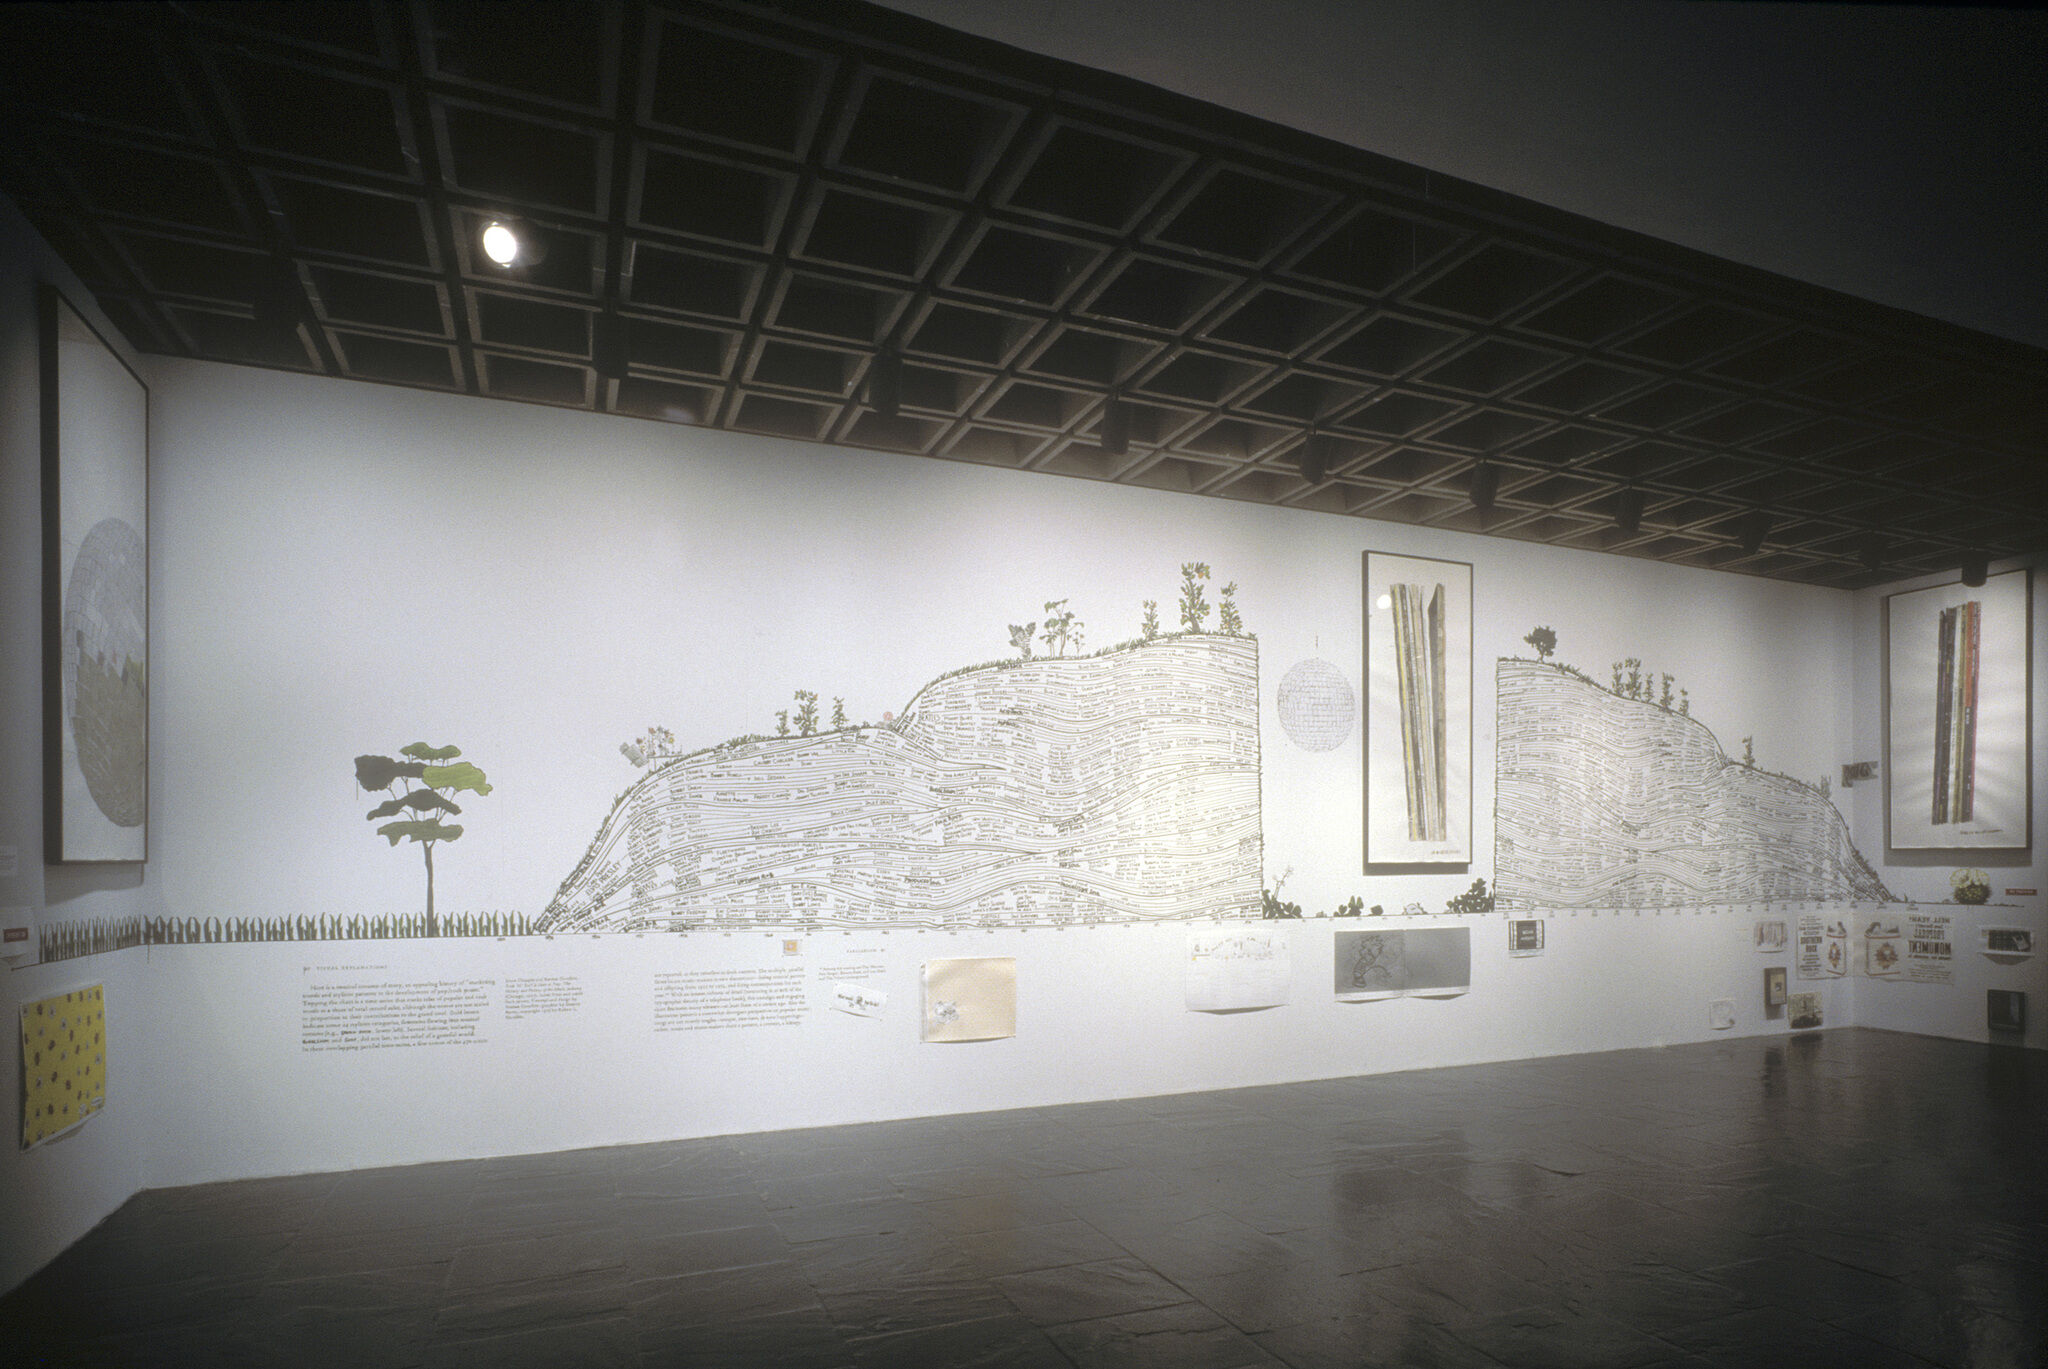 Gallery walls covered in various drawings and text.